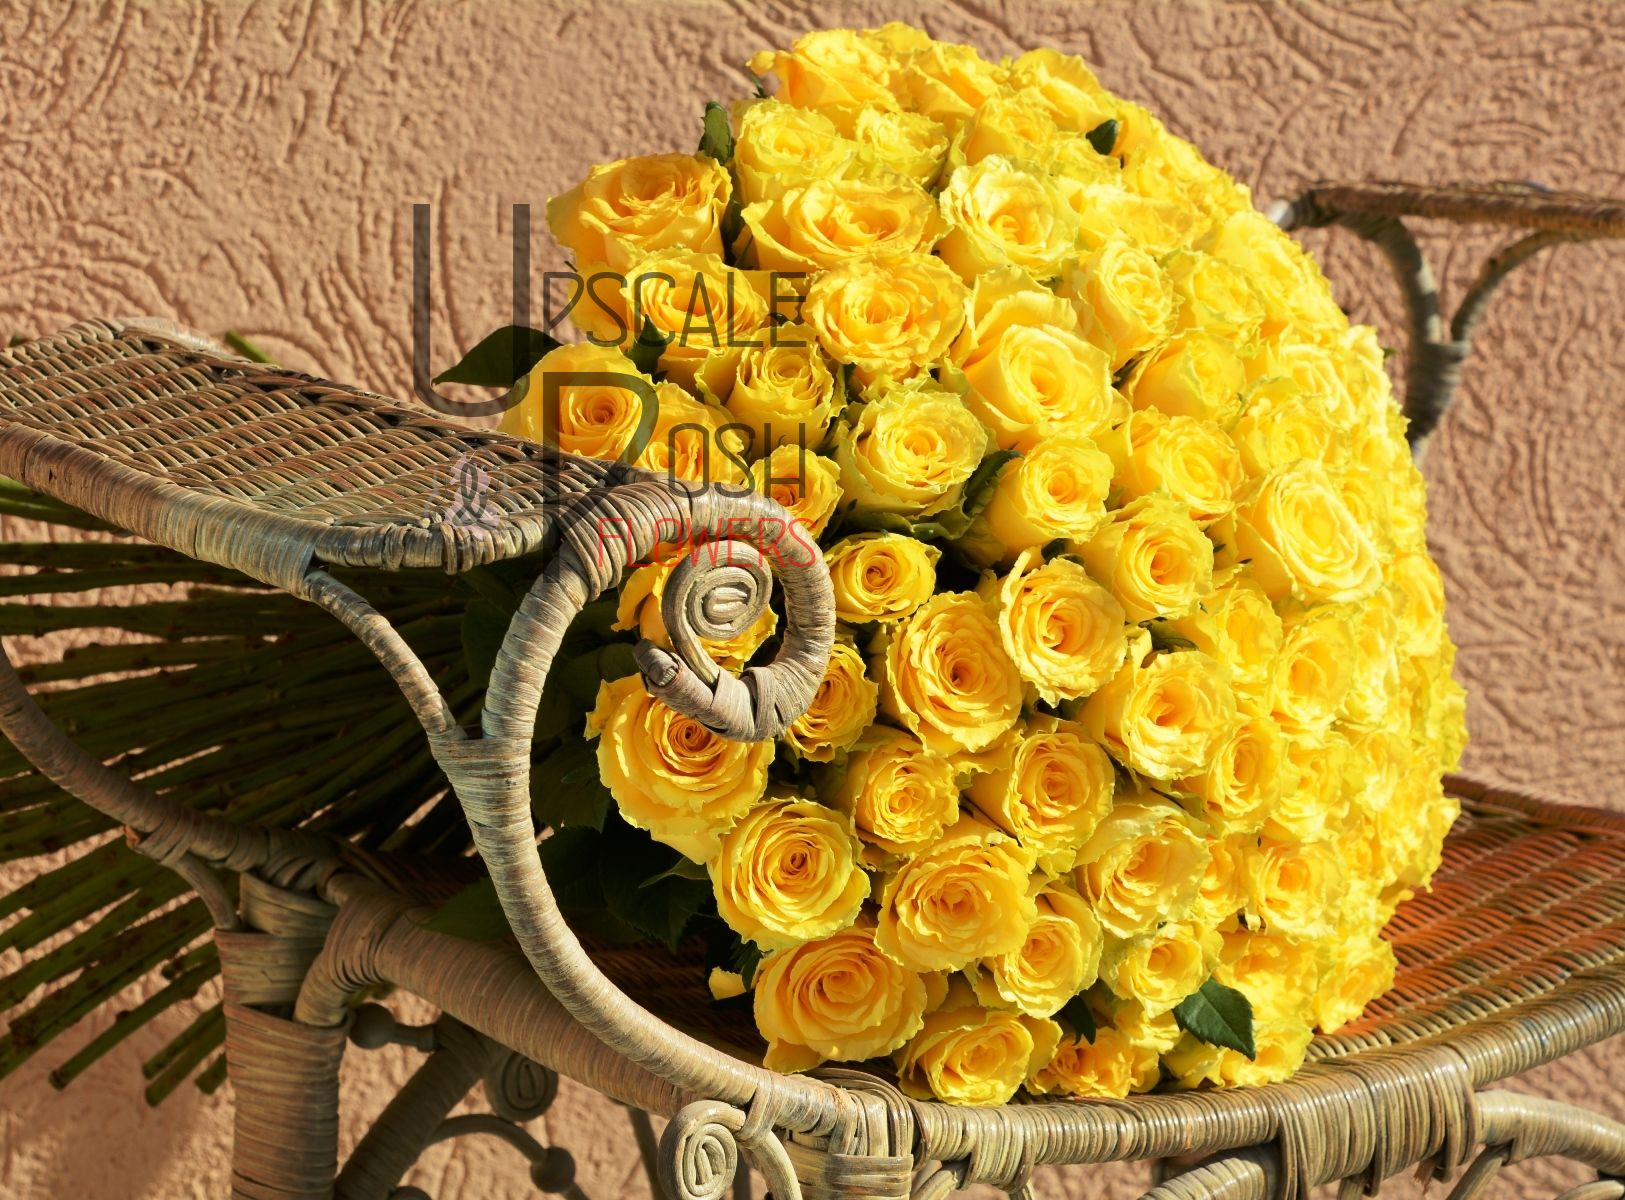 yellow rose bouquet | upscale and posh flowers